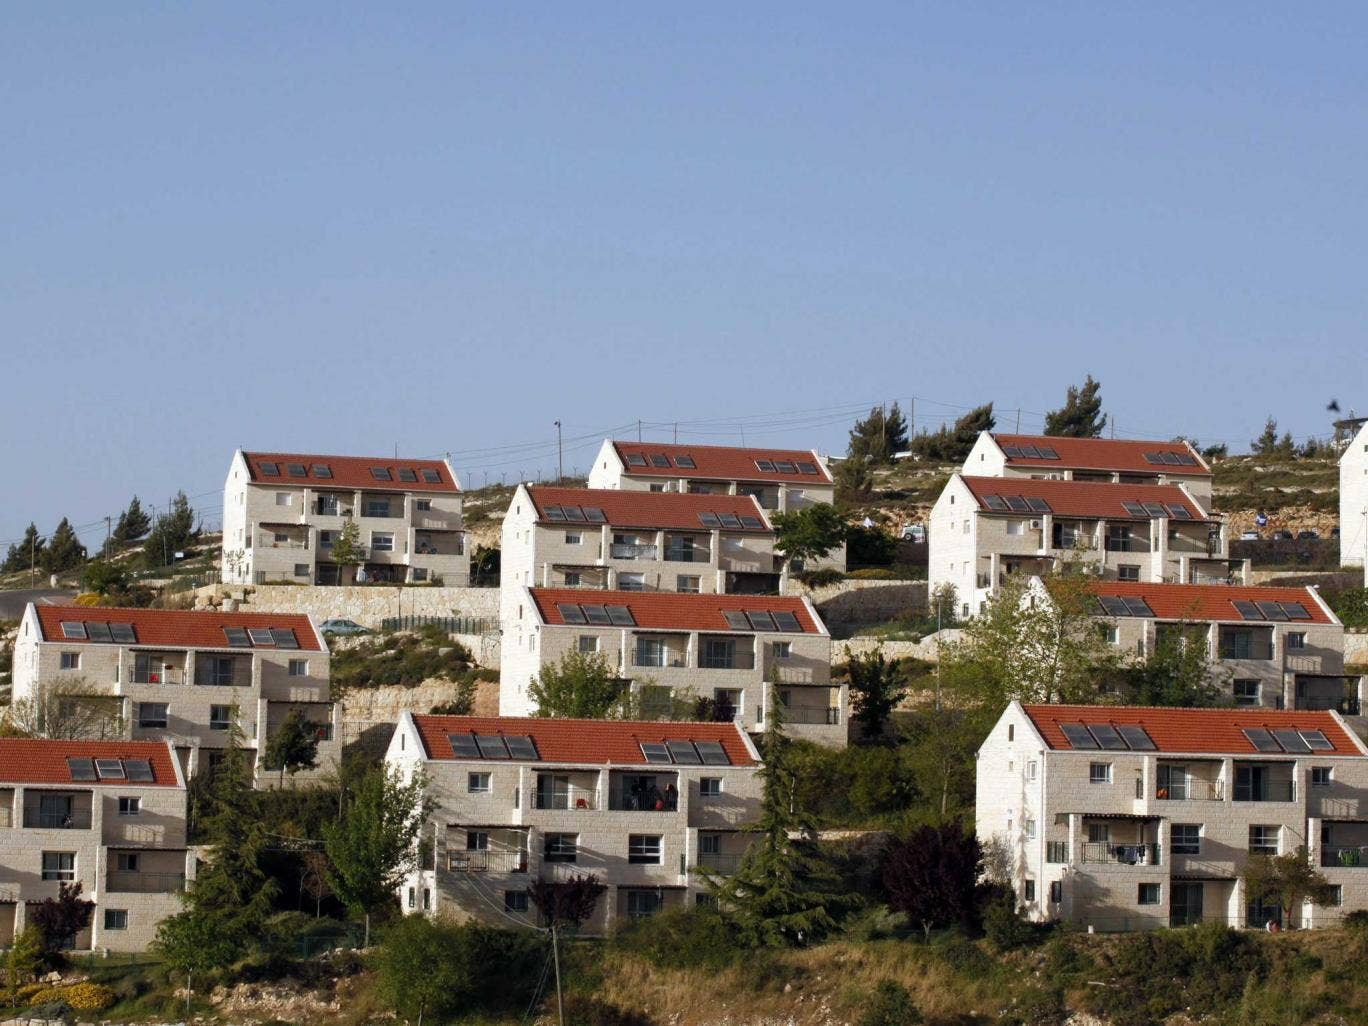 Israel has given the go-ahead to build nearly 300 homes in the Beit El settlement